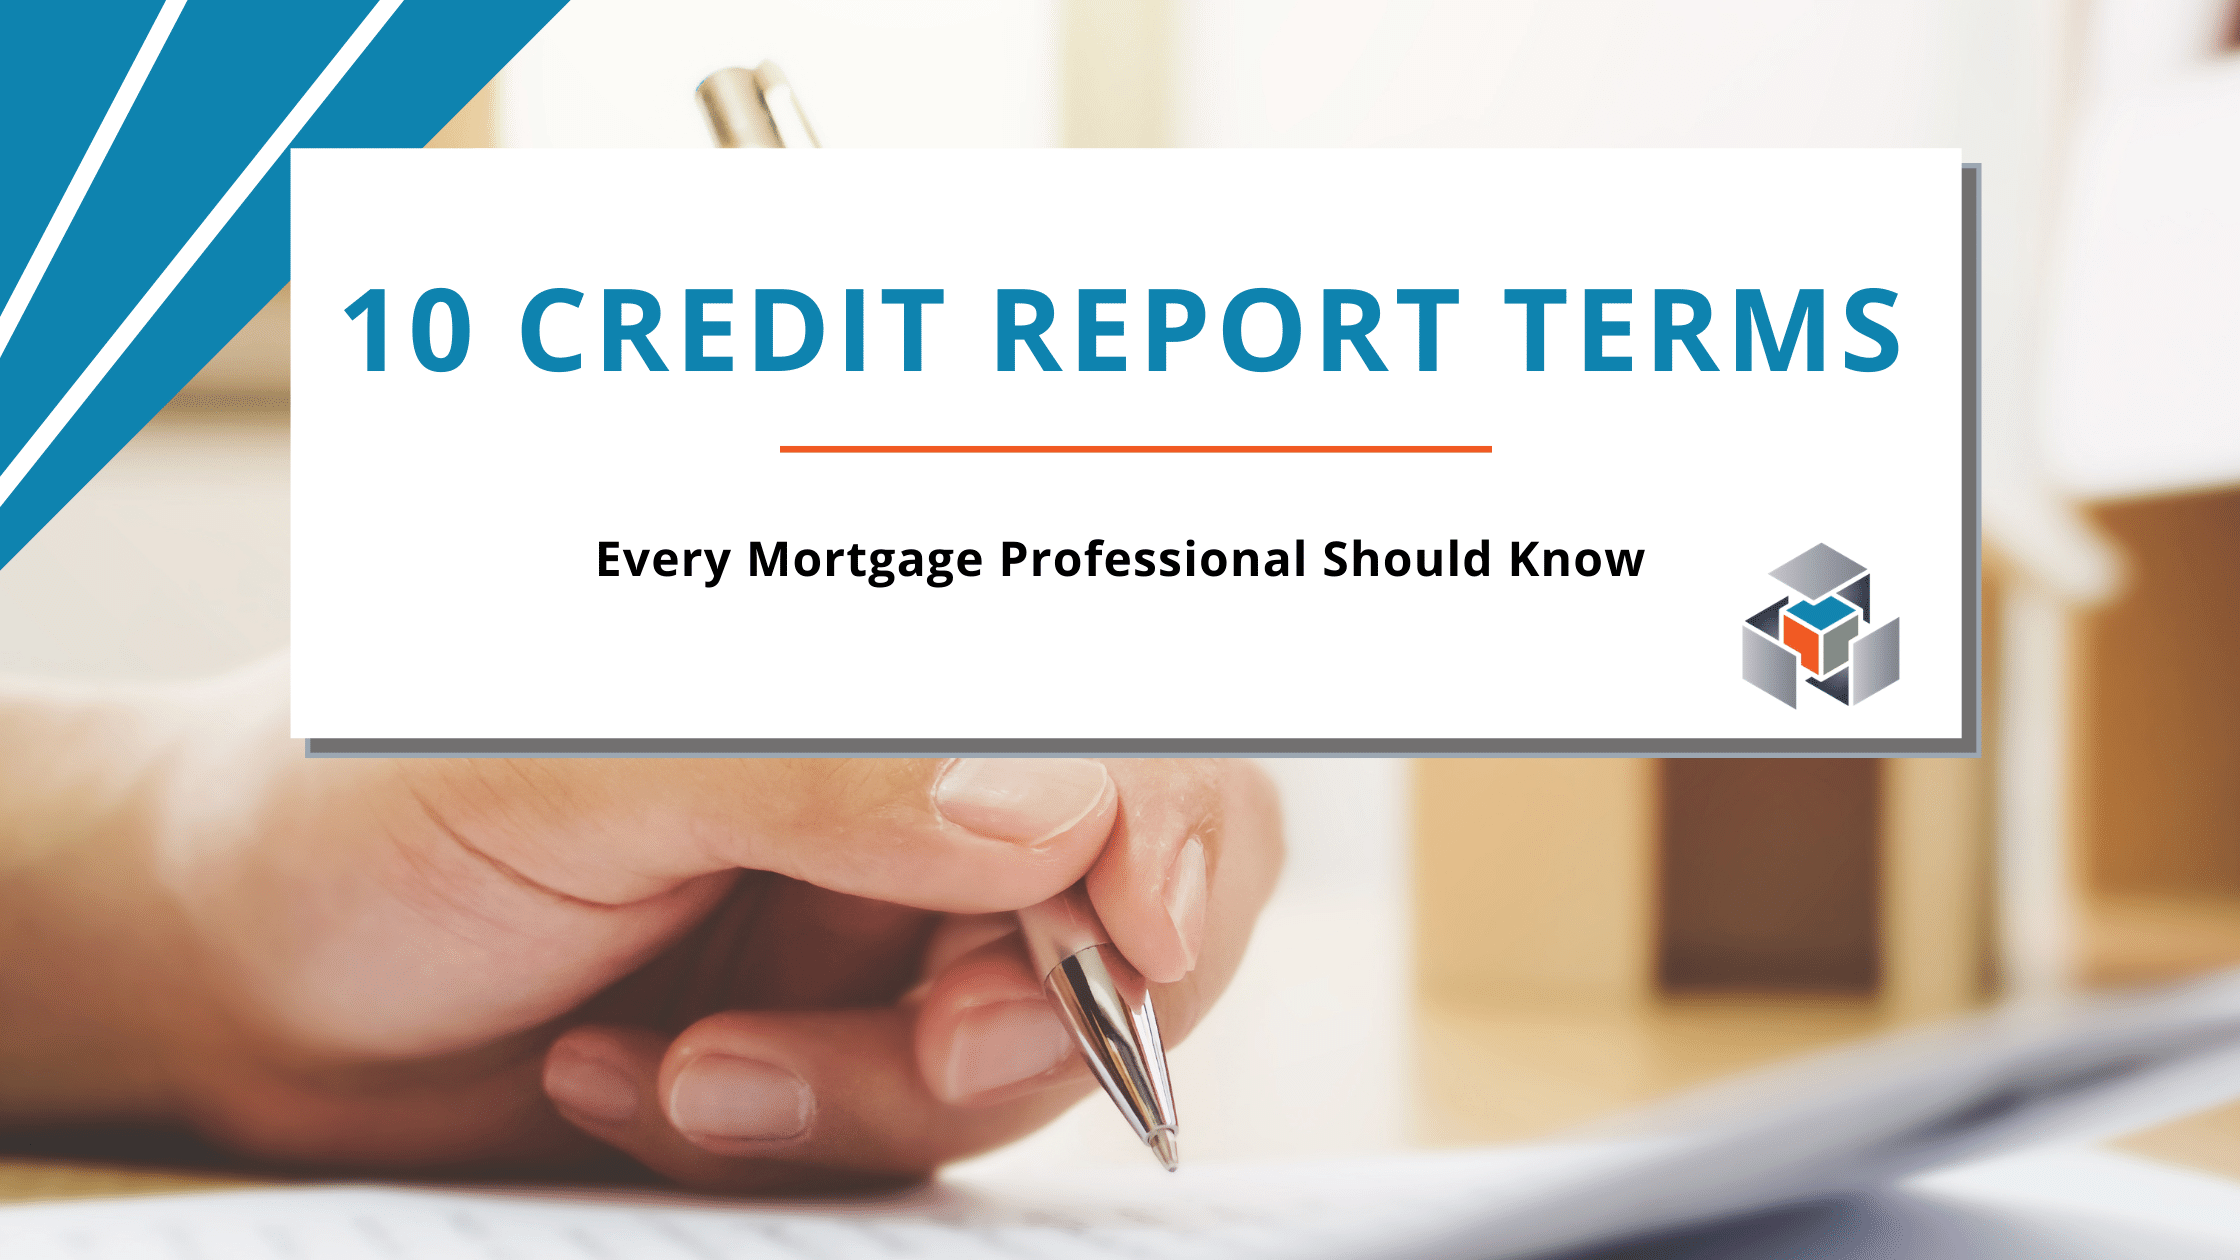 10 Credit Report Terms Mortgage Professionals Should Know